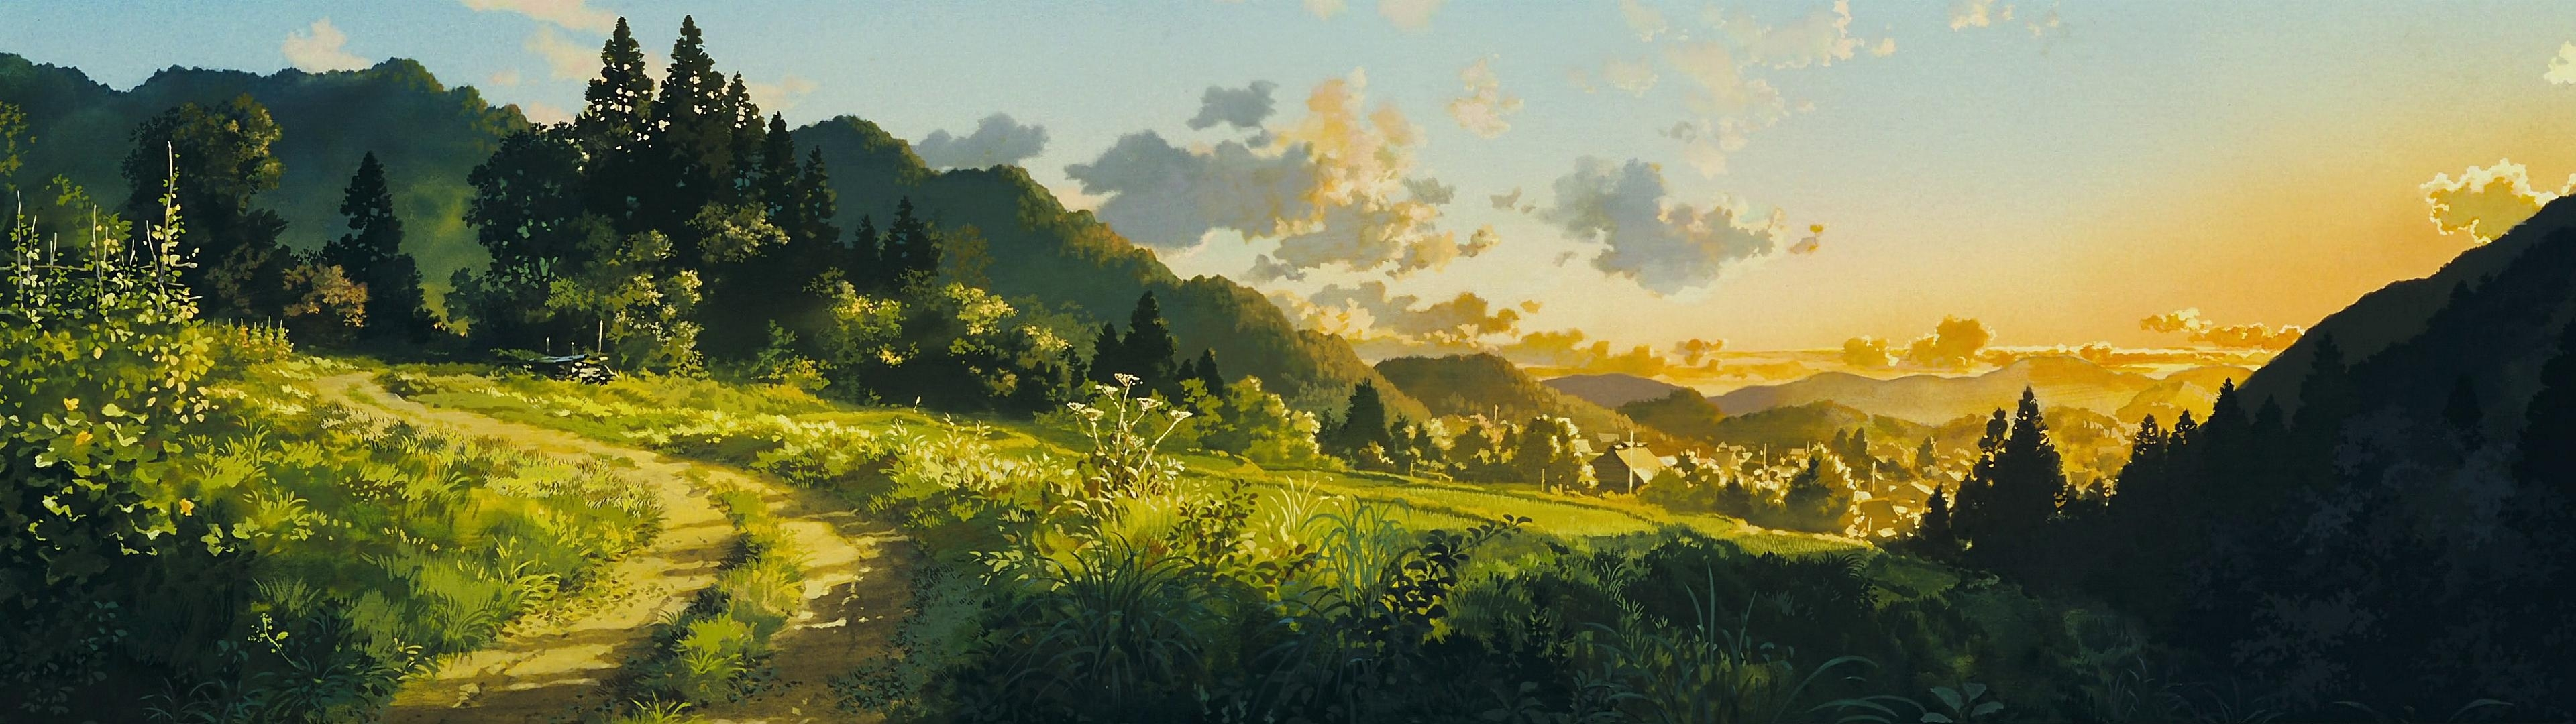 high res 'dual screen' studio ghibli desktop wallpapers!